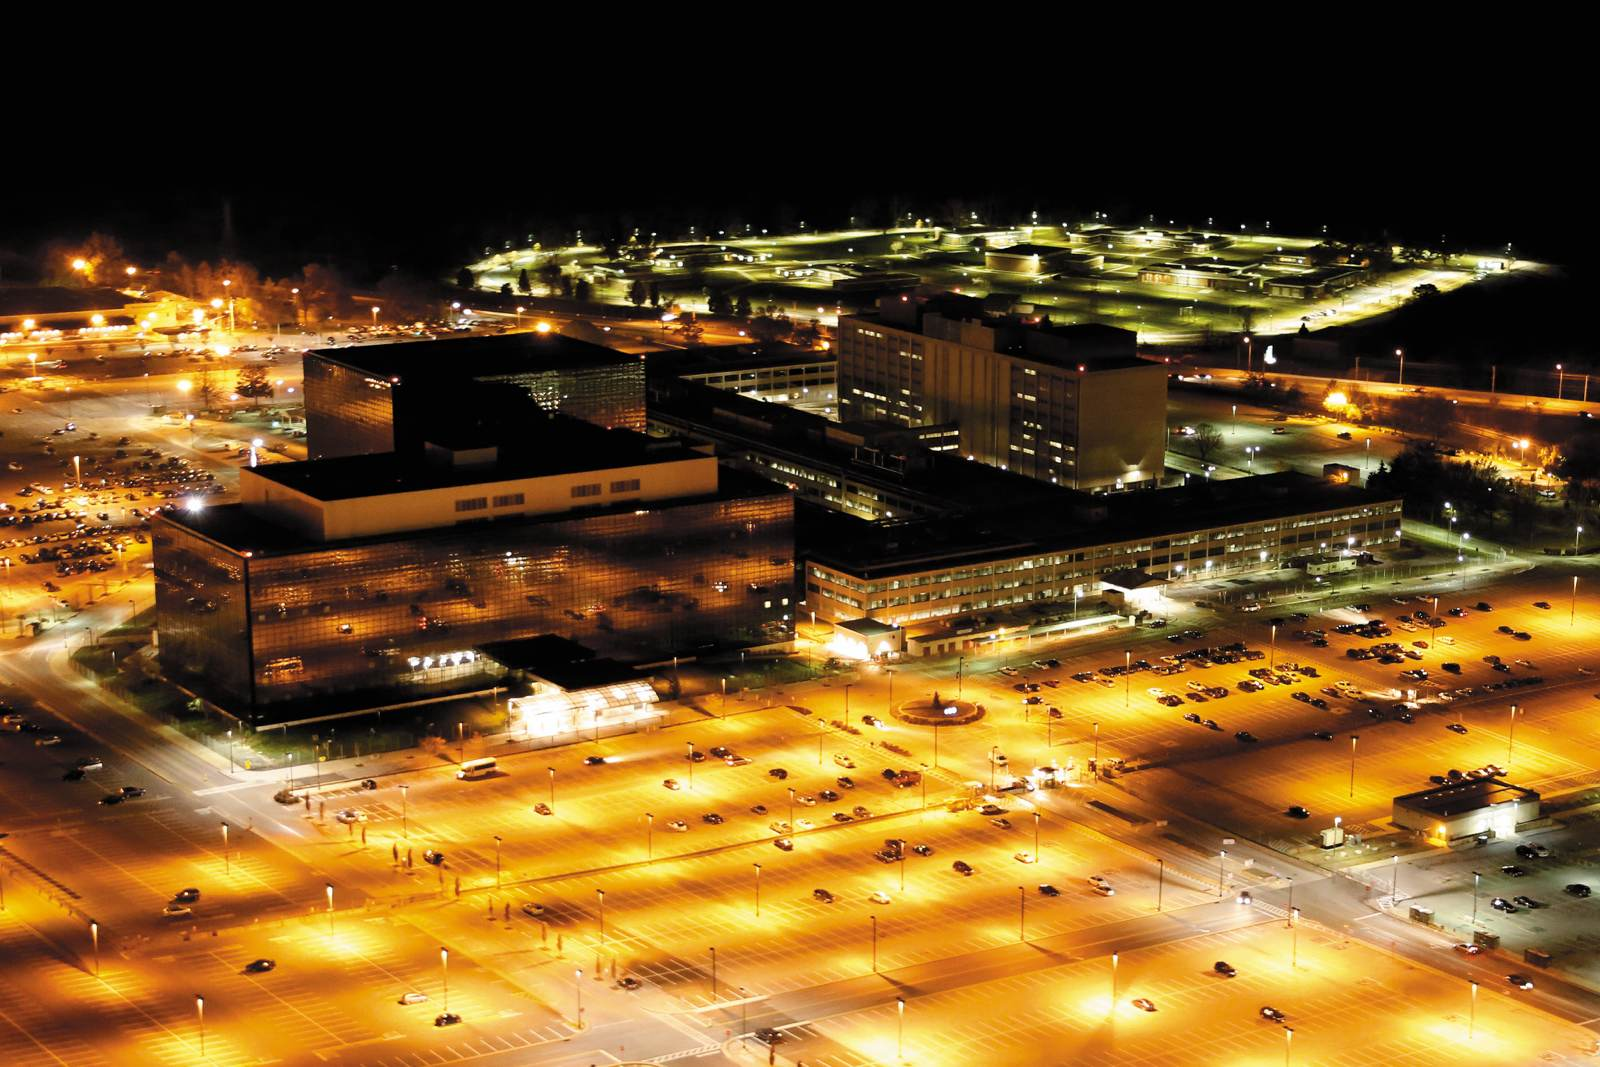 The National Security Agency, Fort Meade, Maryland, 2013; photograph by Trevor Paglen